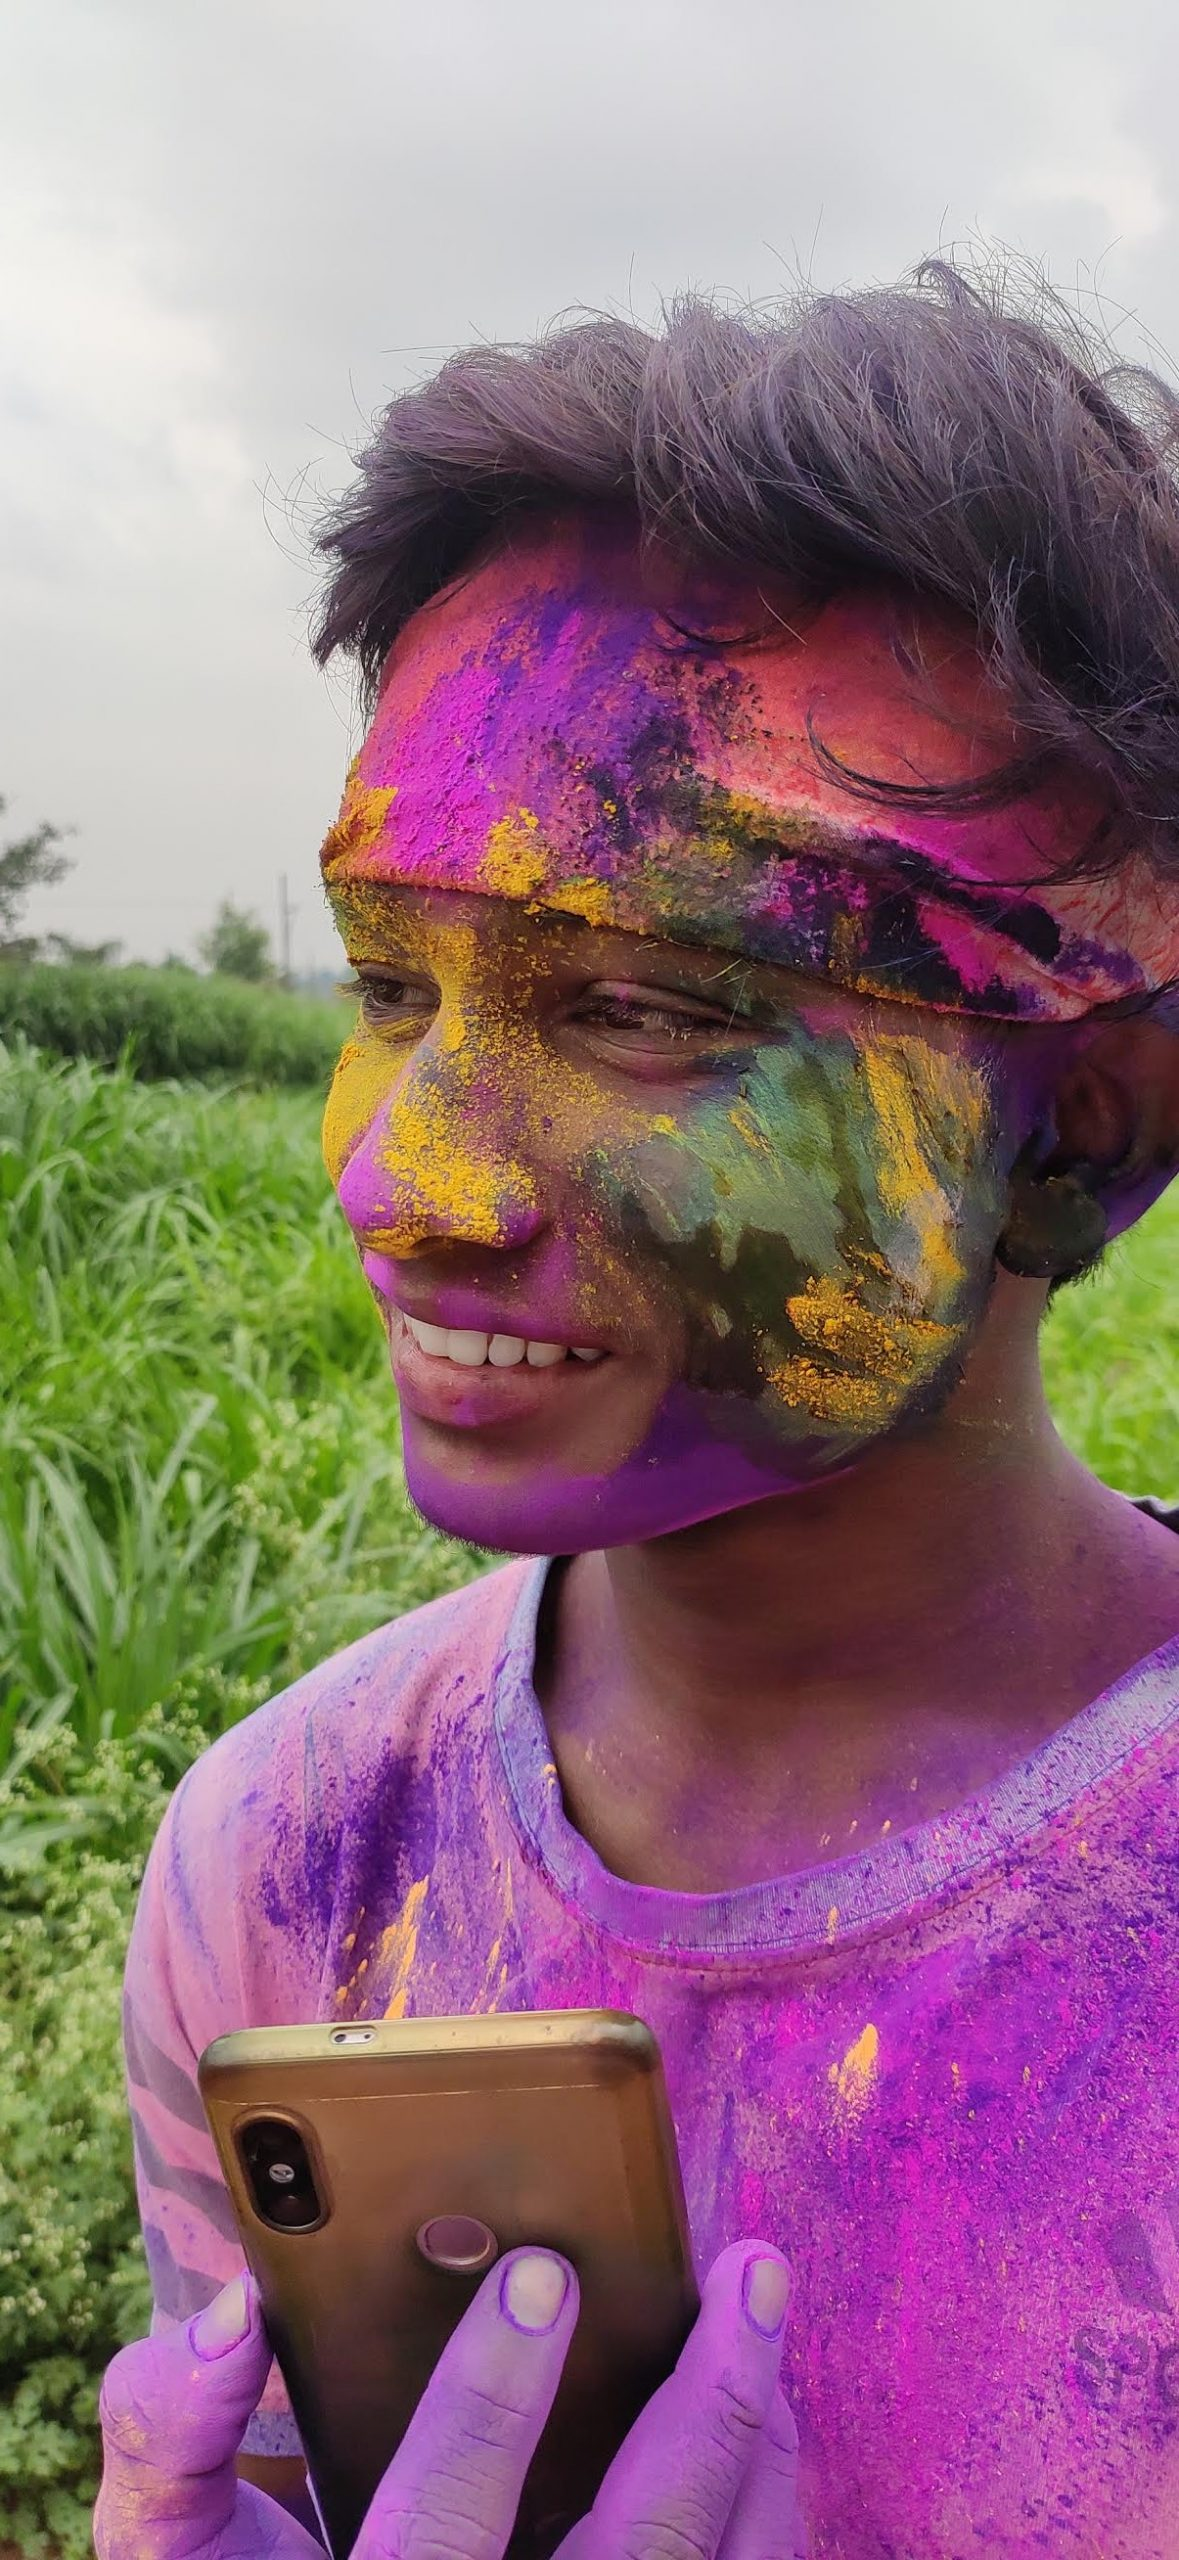 man with holi colors on face